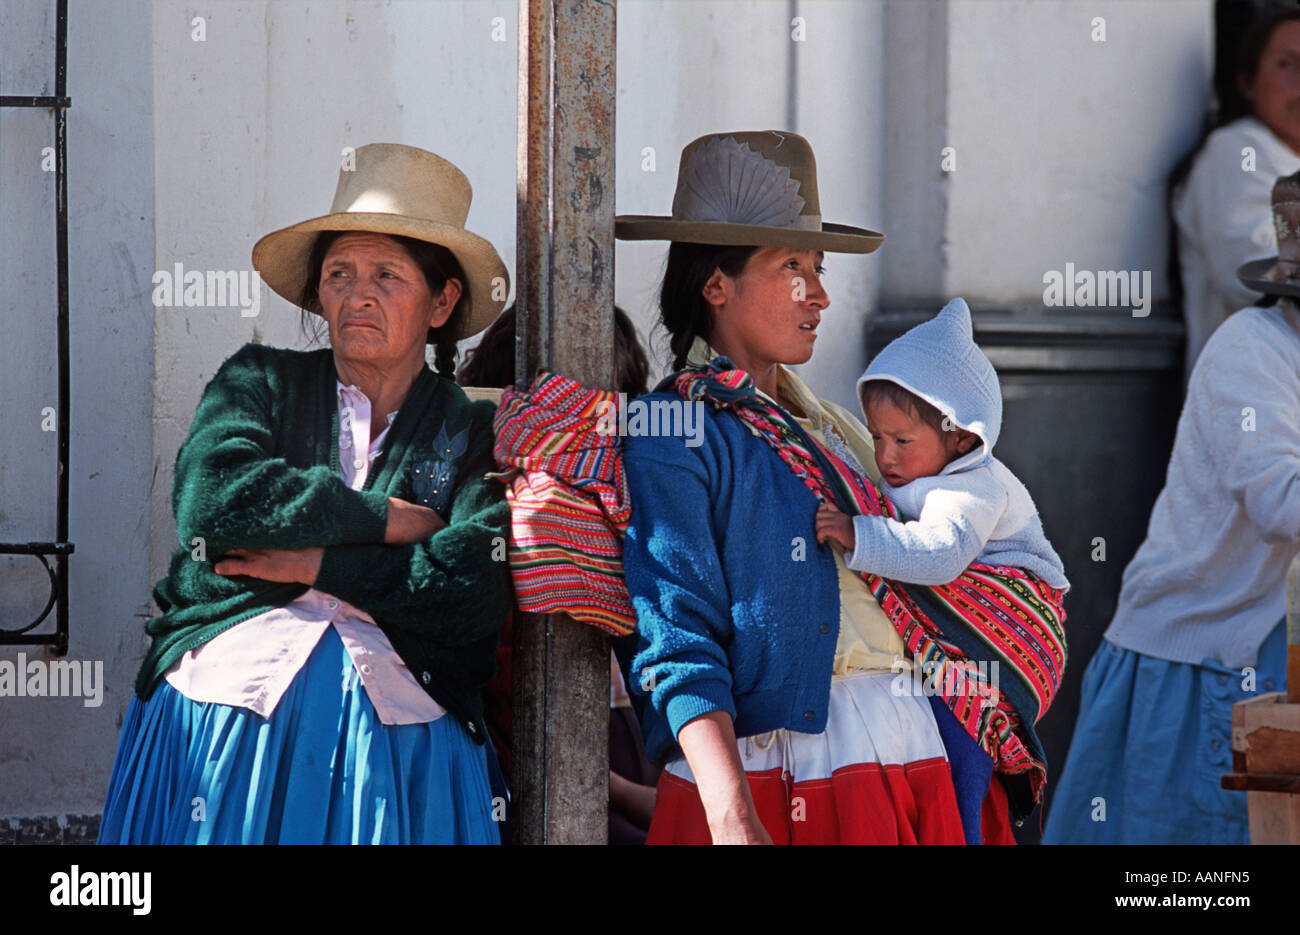 Women one carrying child standing on a street corner during local festivities Calleyon de Huaylas Northern Peru - Stock Image